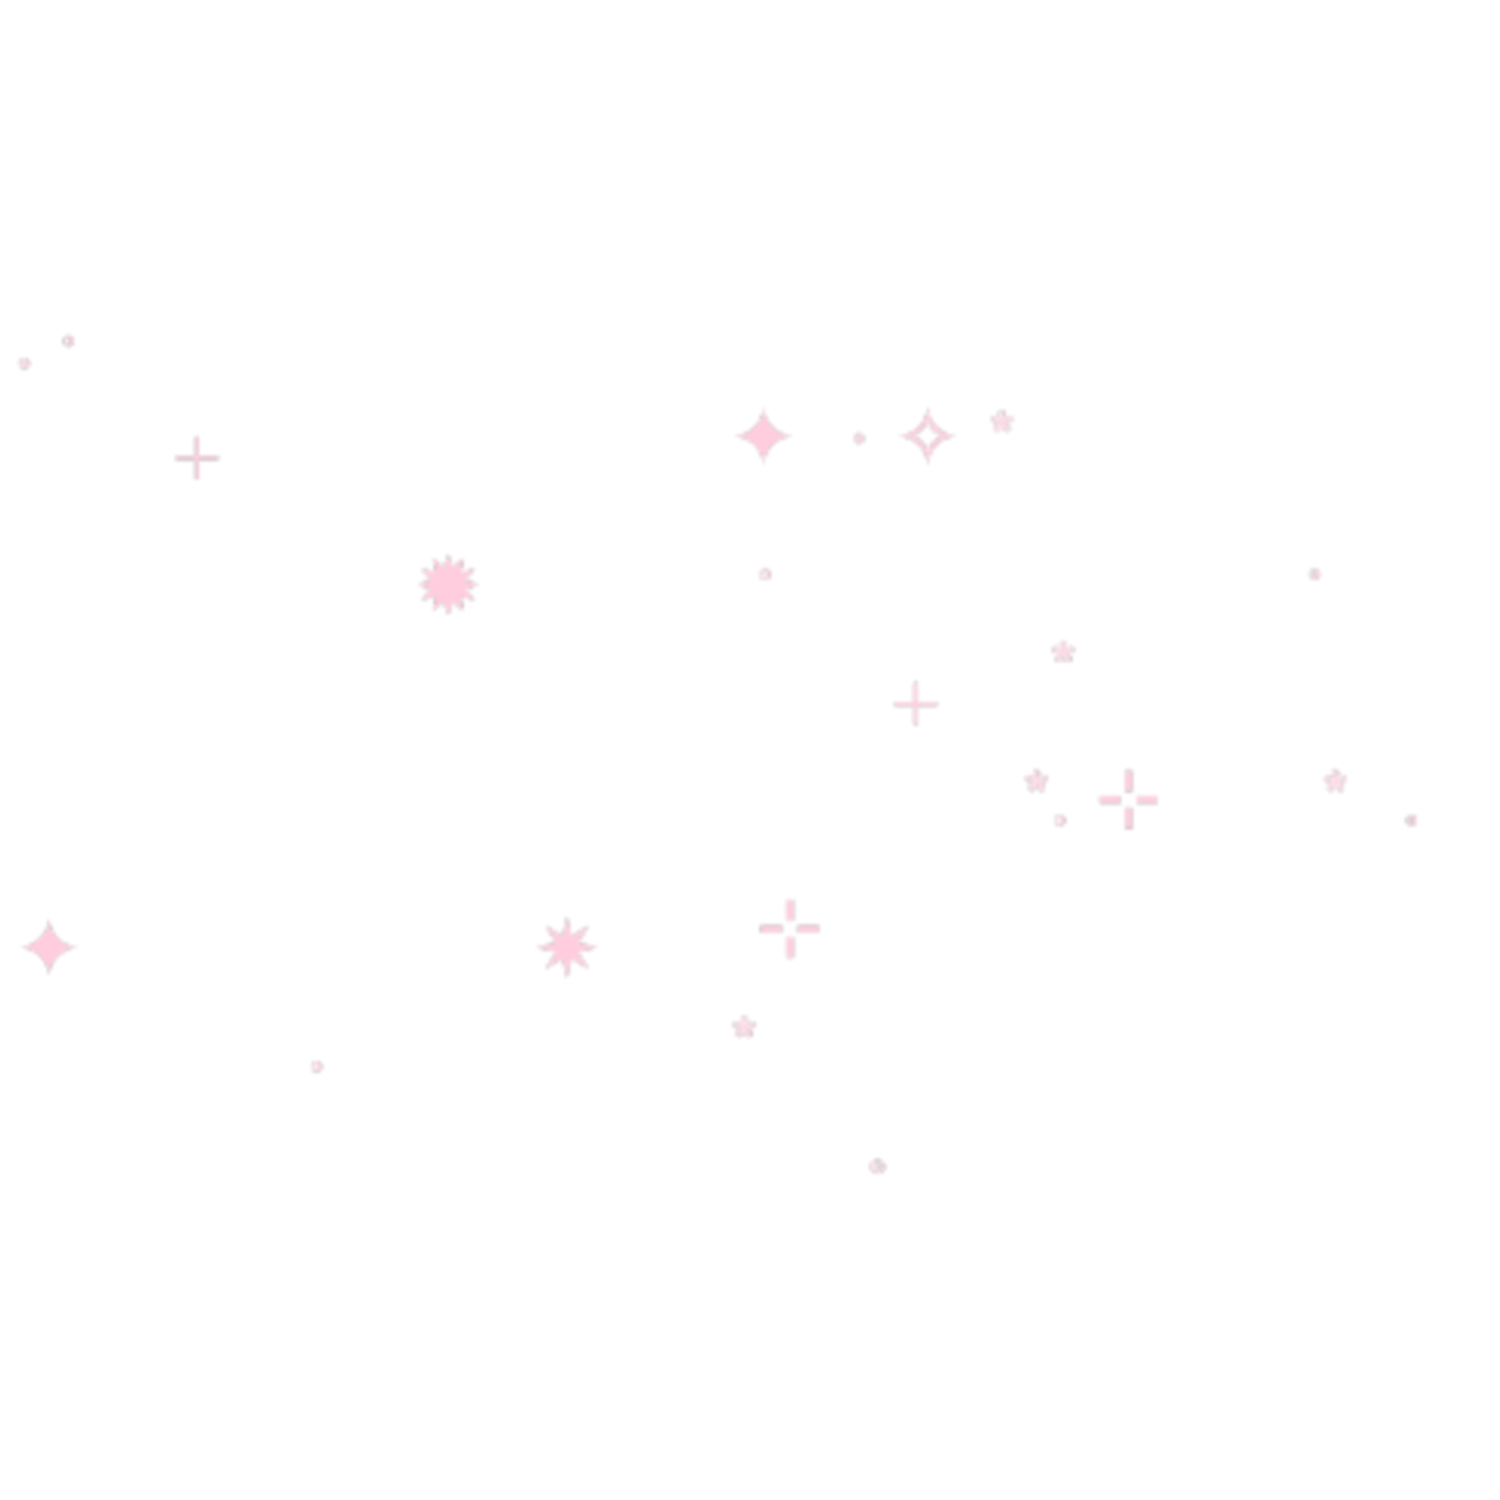 Star Stars Pink Cute Sticker By Aѕuswag Discover All Images By Aѕuswag Find More Awesome Sparkle Png Overlays Picsart Graphic Design Photoshop